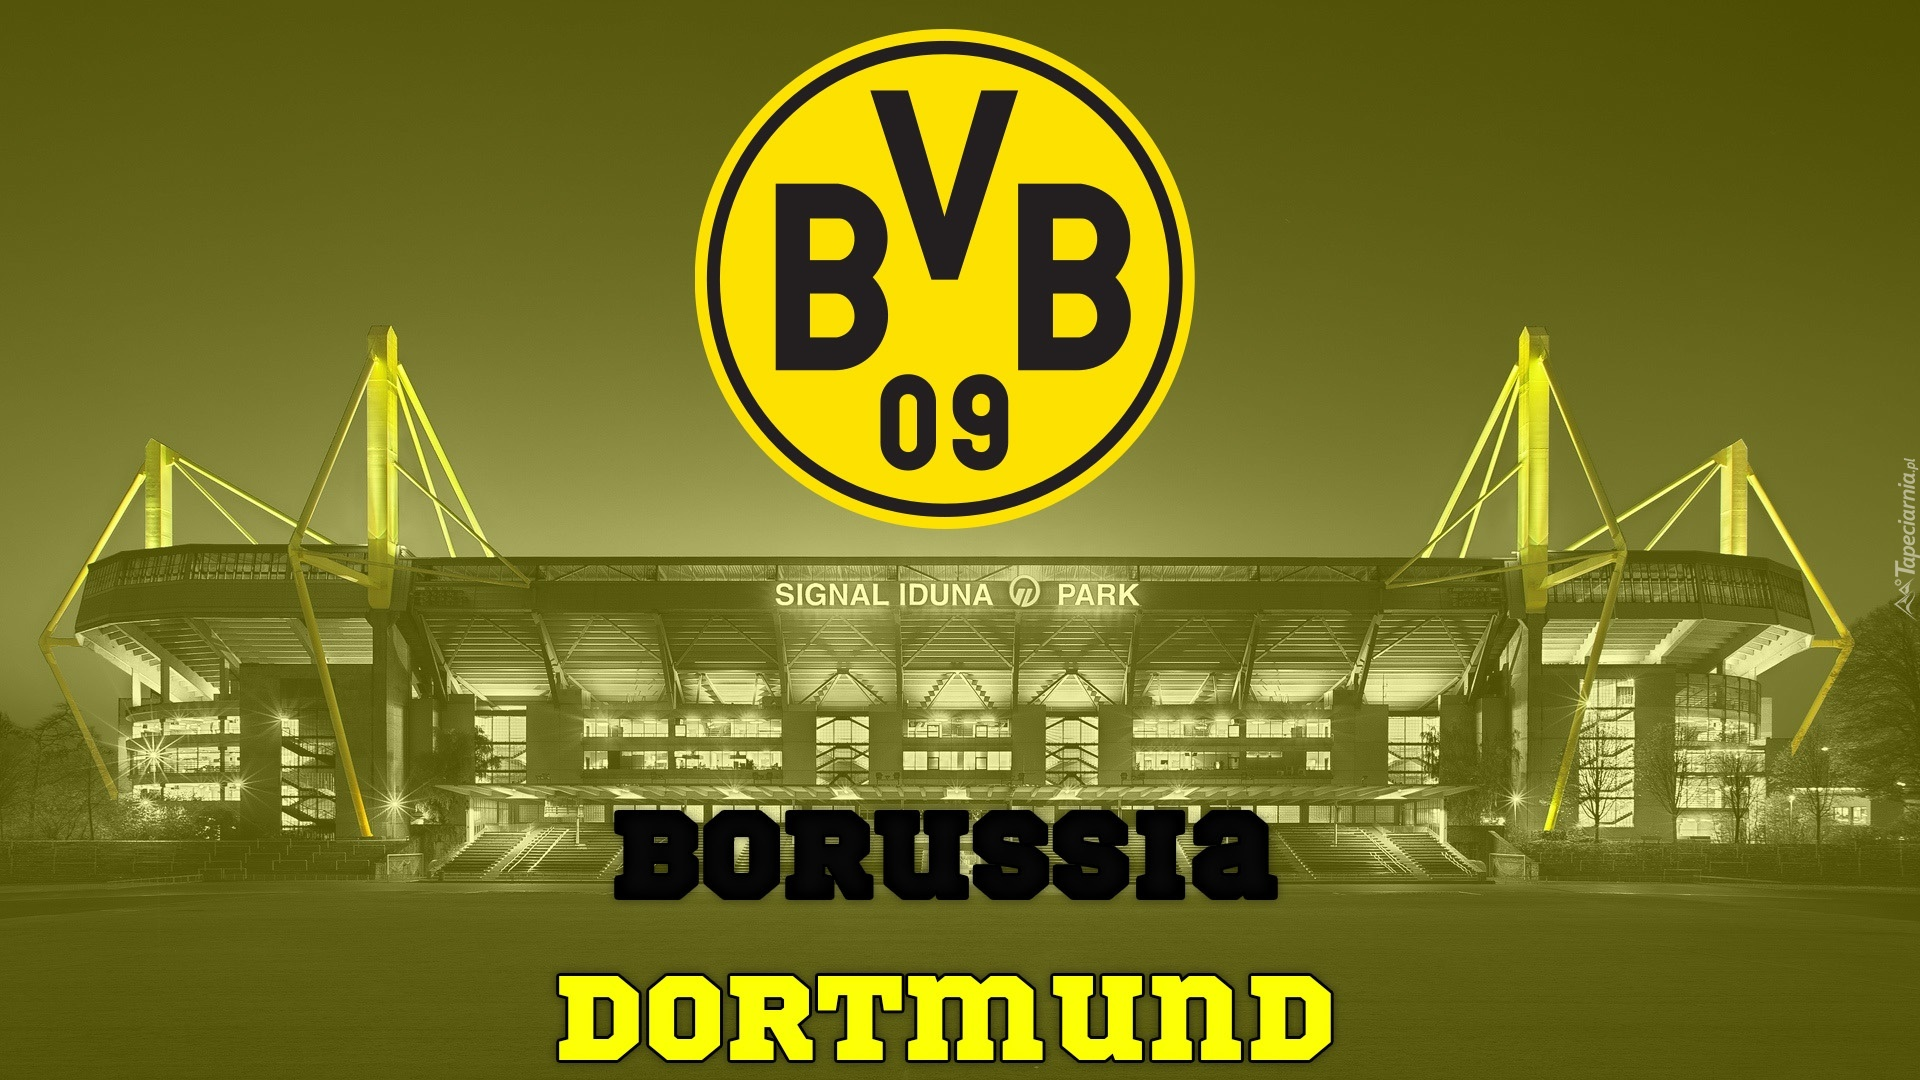 borussia dortmund pi ka no na. Black Bedroom Furniture Sets. Home Design Ideas